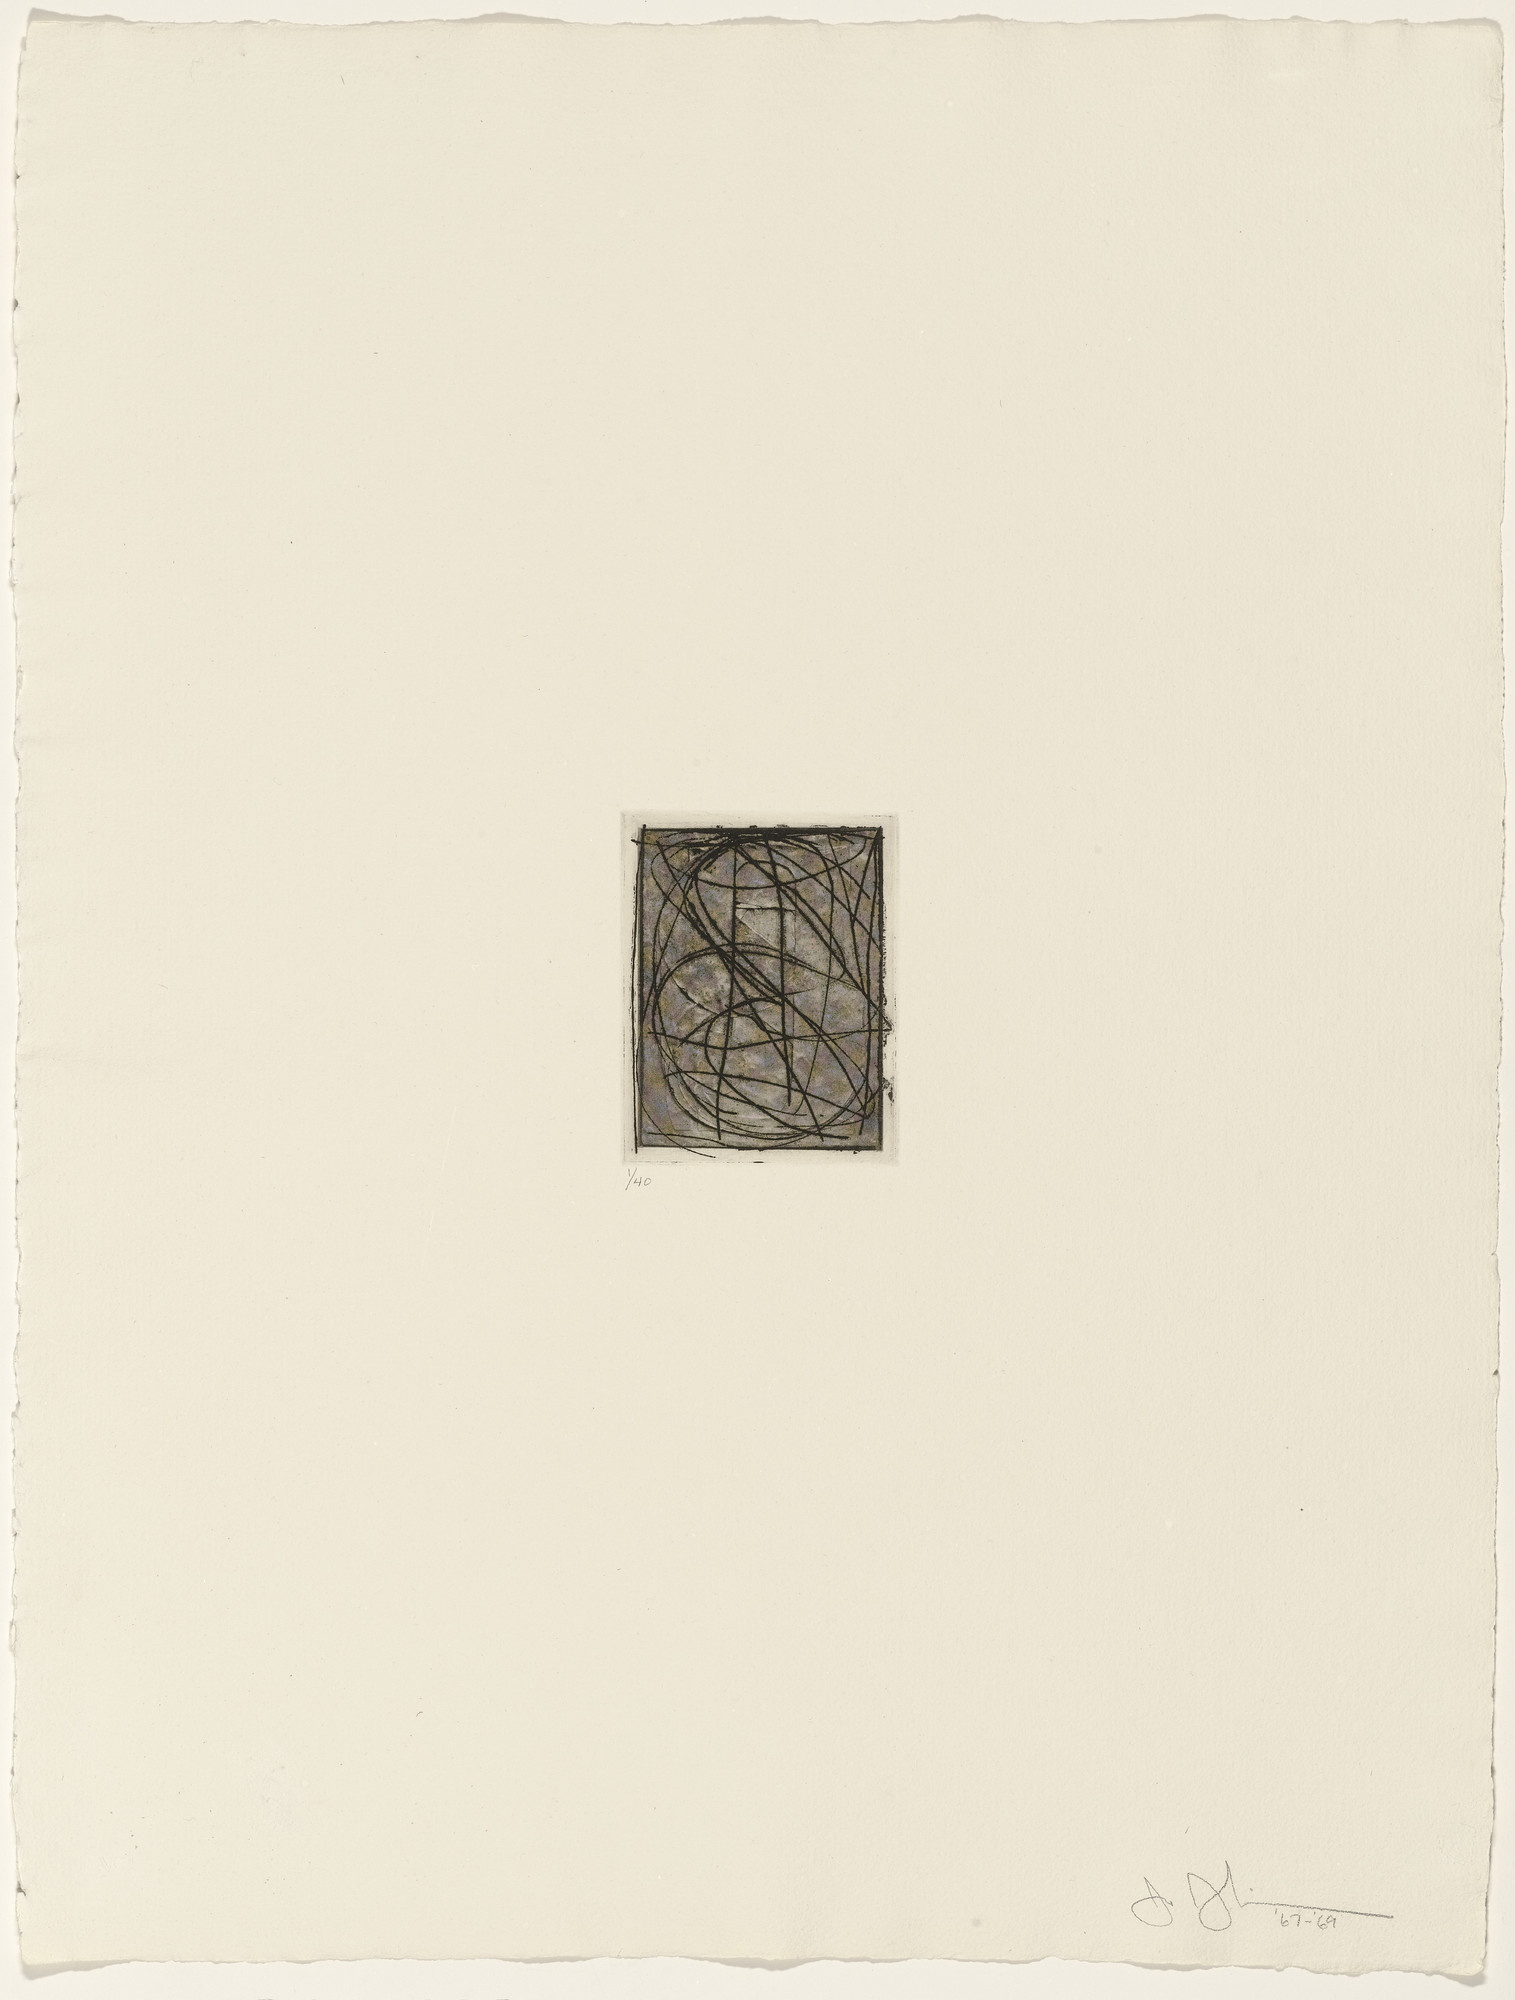 Jasper Johns. 0 through 9 from 1st Etchings-2nd State. 1967–69, published 1969